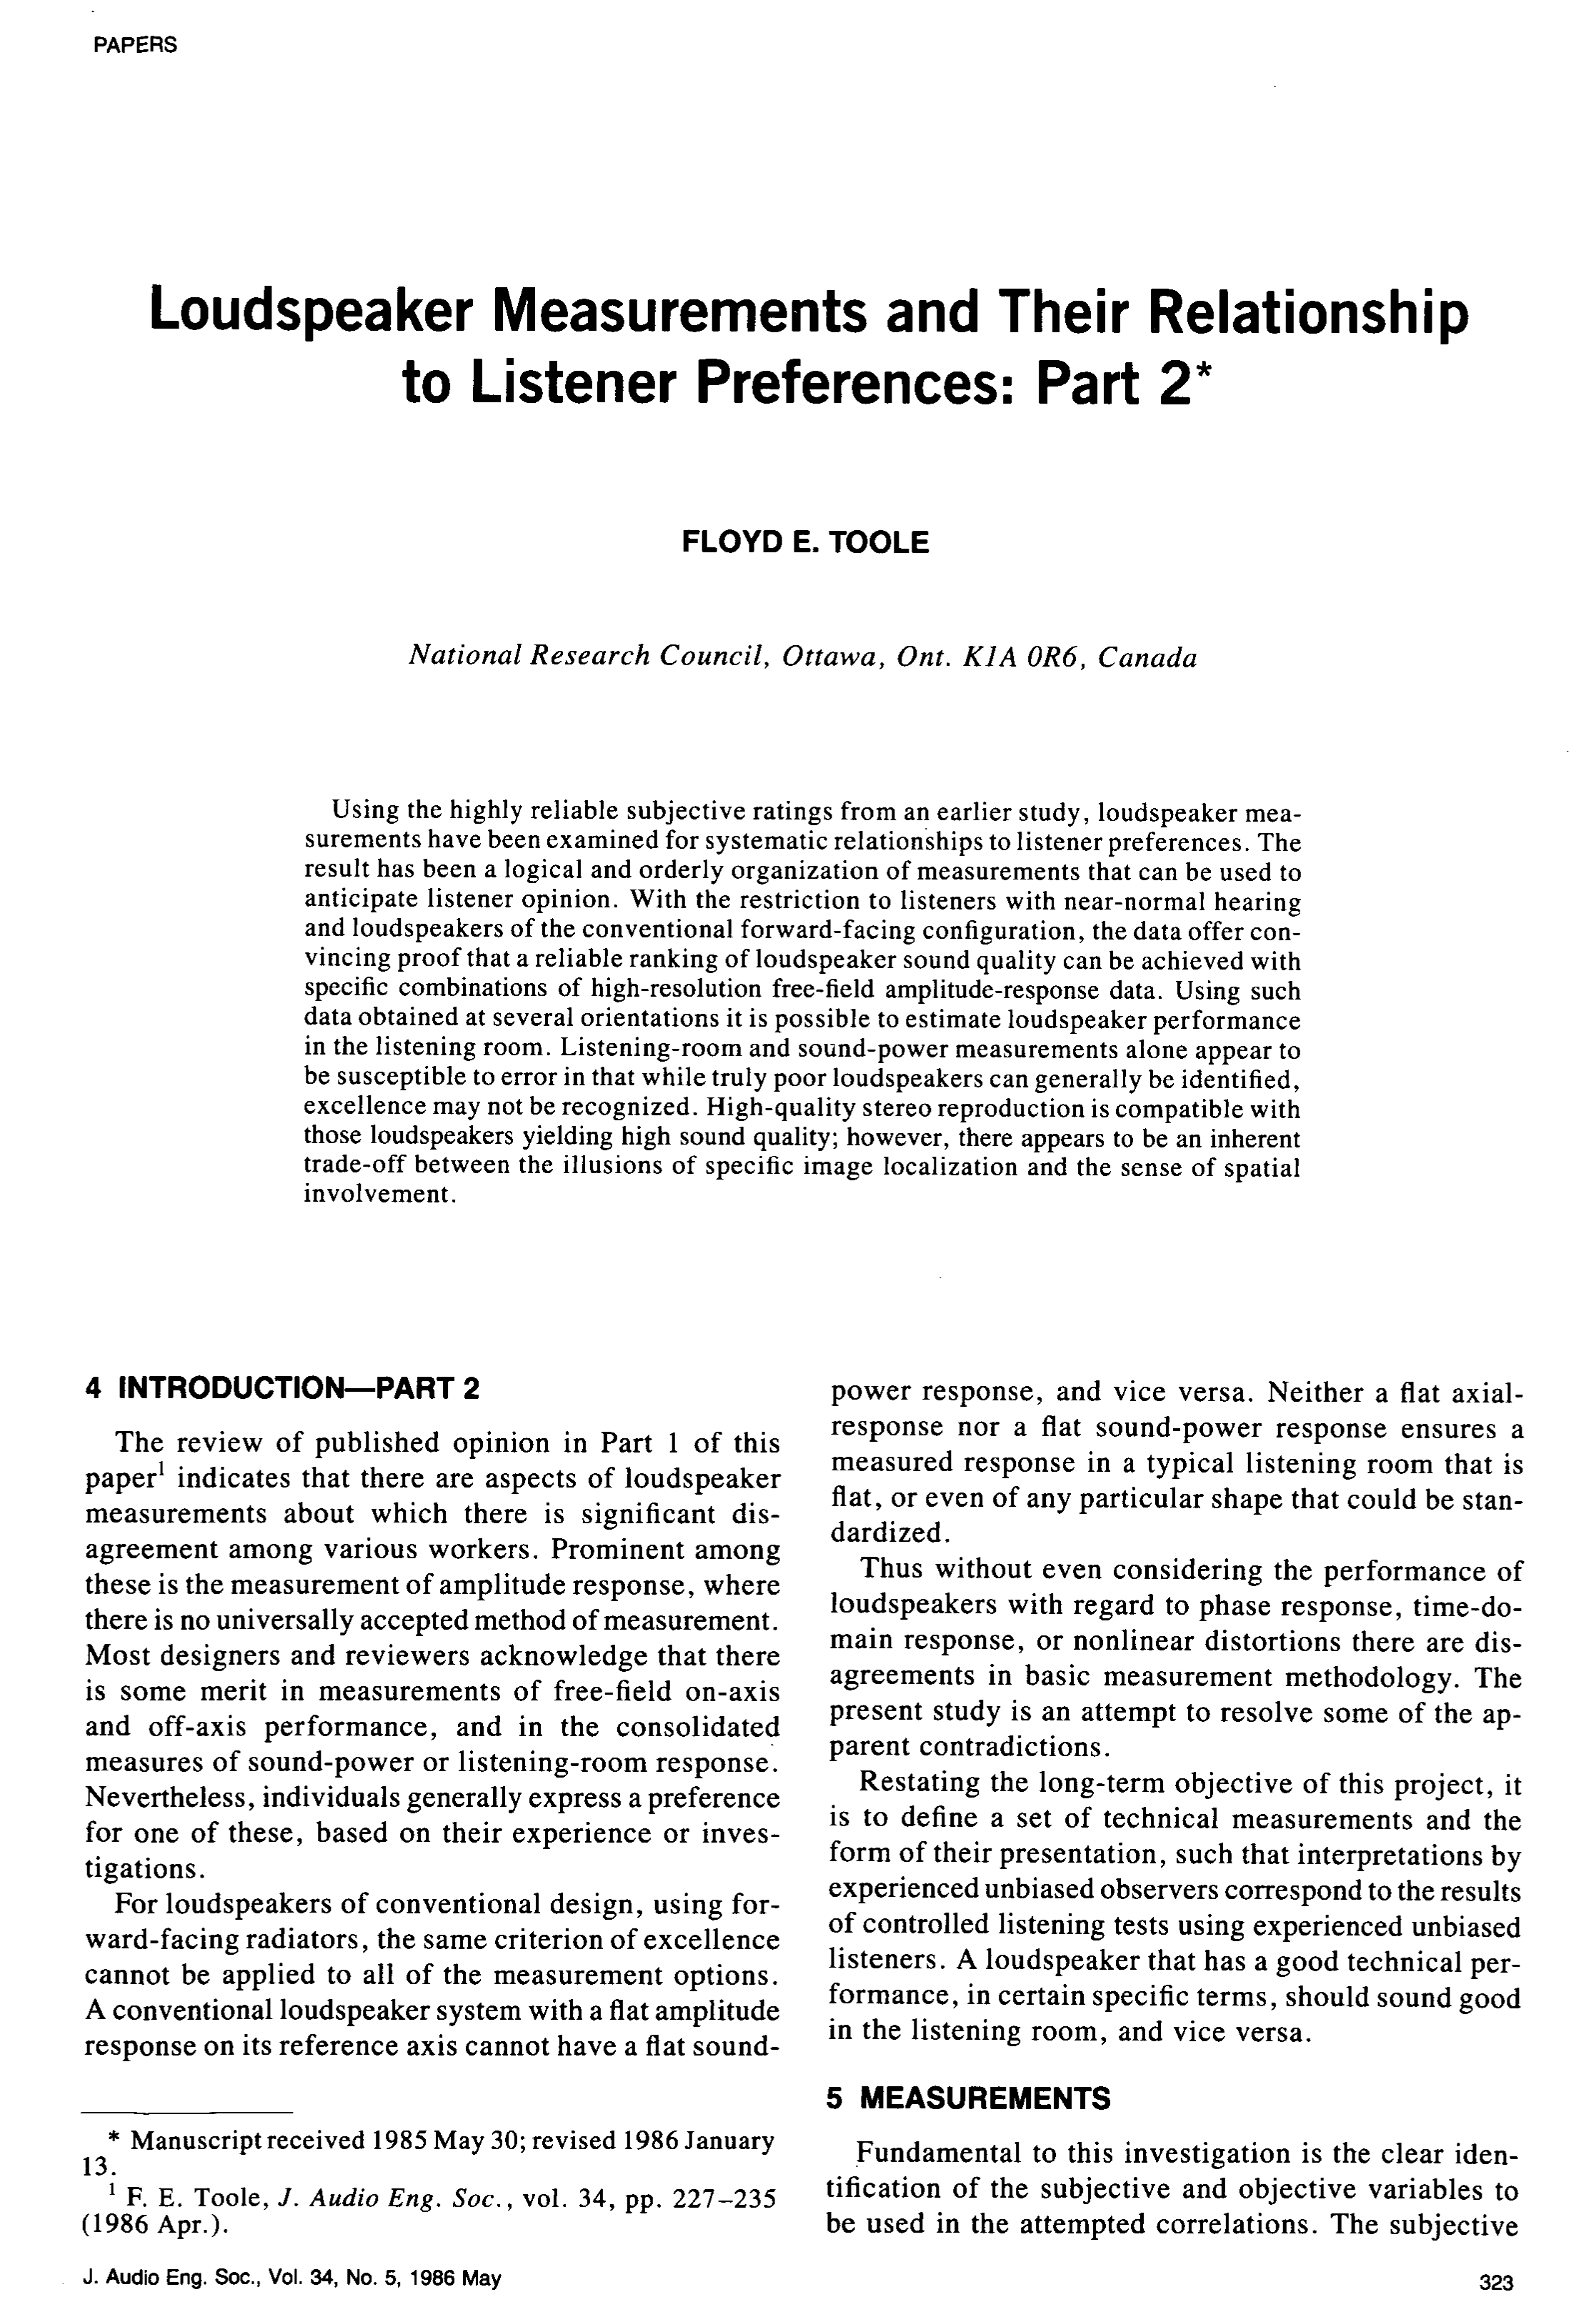 AES E-Library » Loudspeaker Measurements and Their